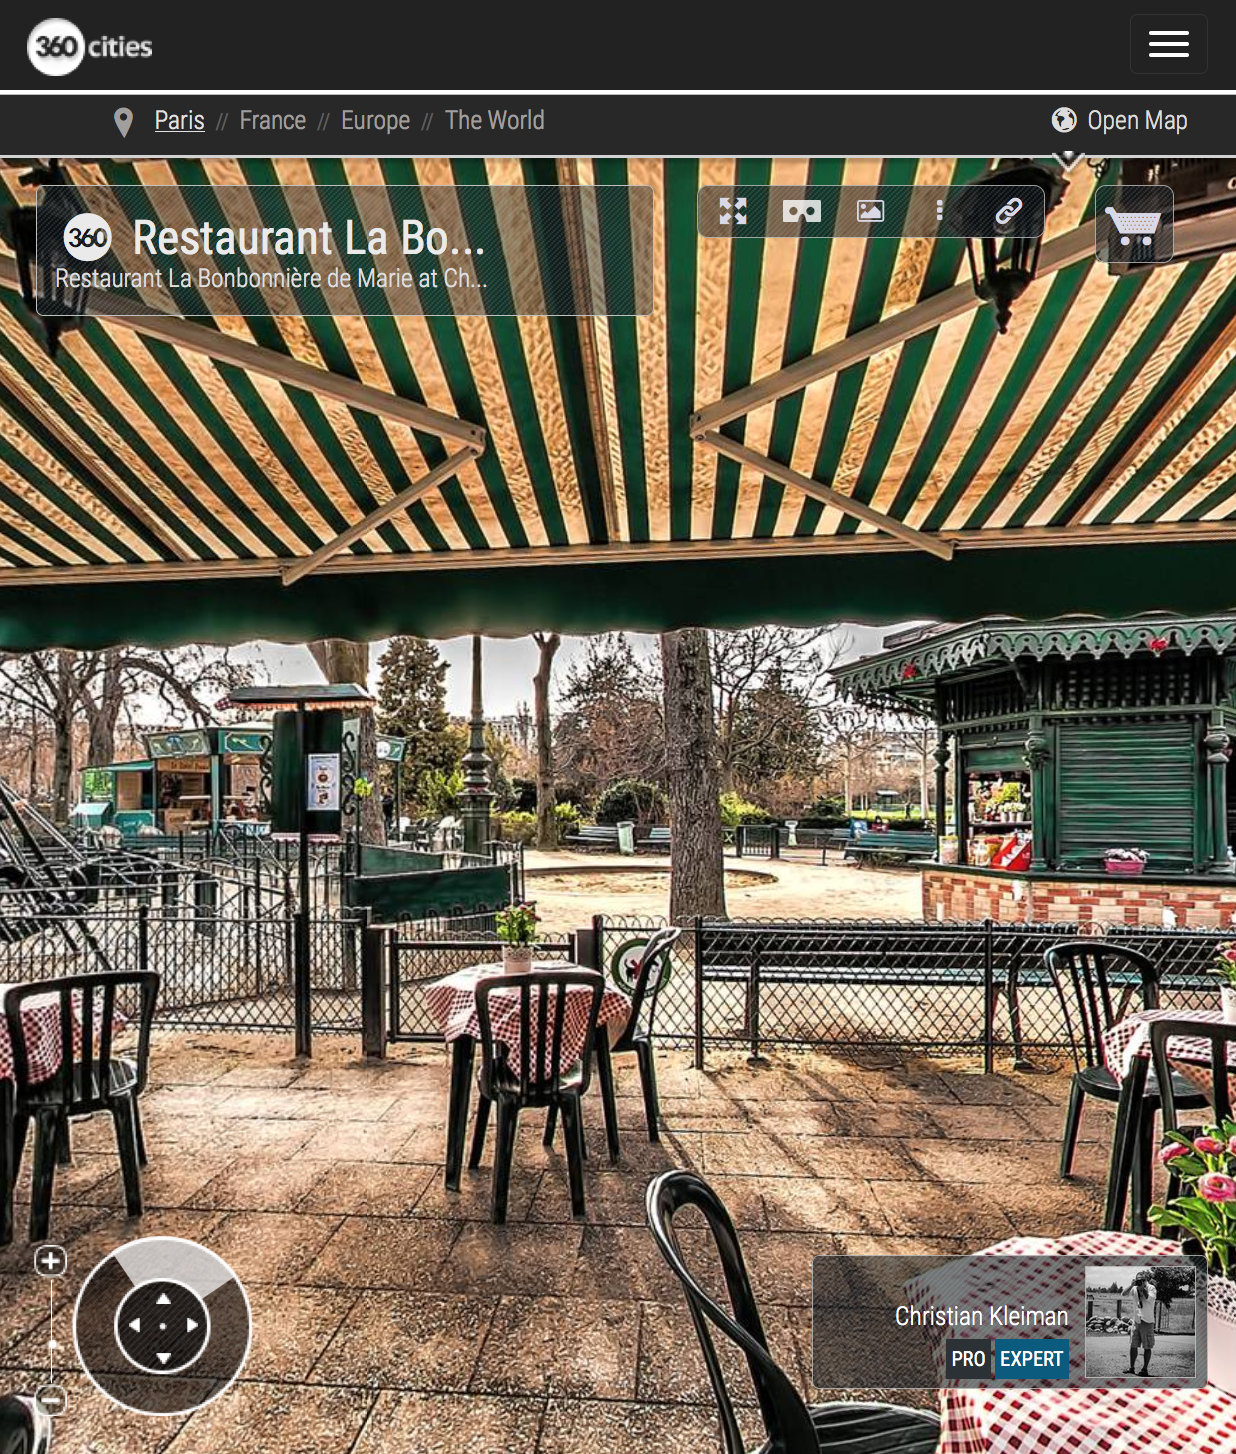 Restaurant La Bonbonnière de Marie - Winter at Champ de Mars - Creative 360 Spherical Panoramic Photography from places in Paris by © Christian Kleiman